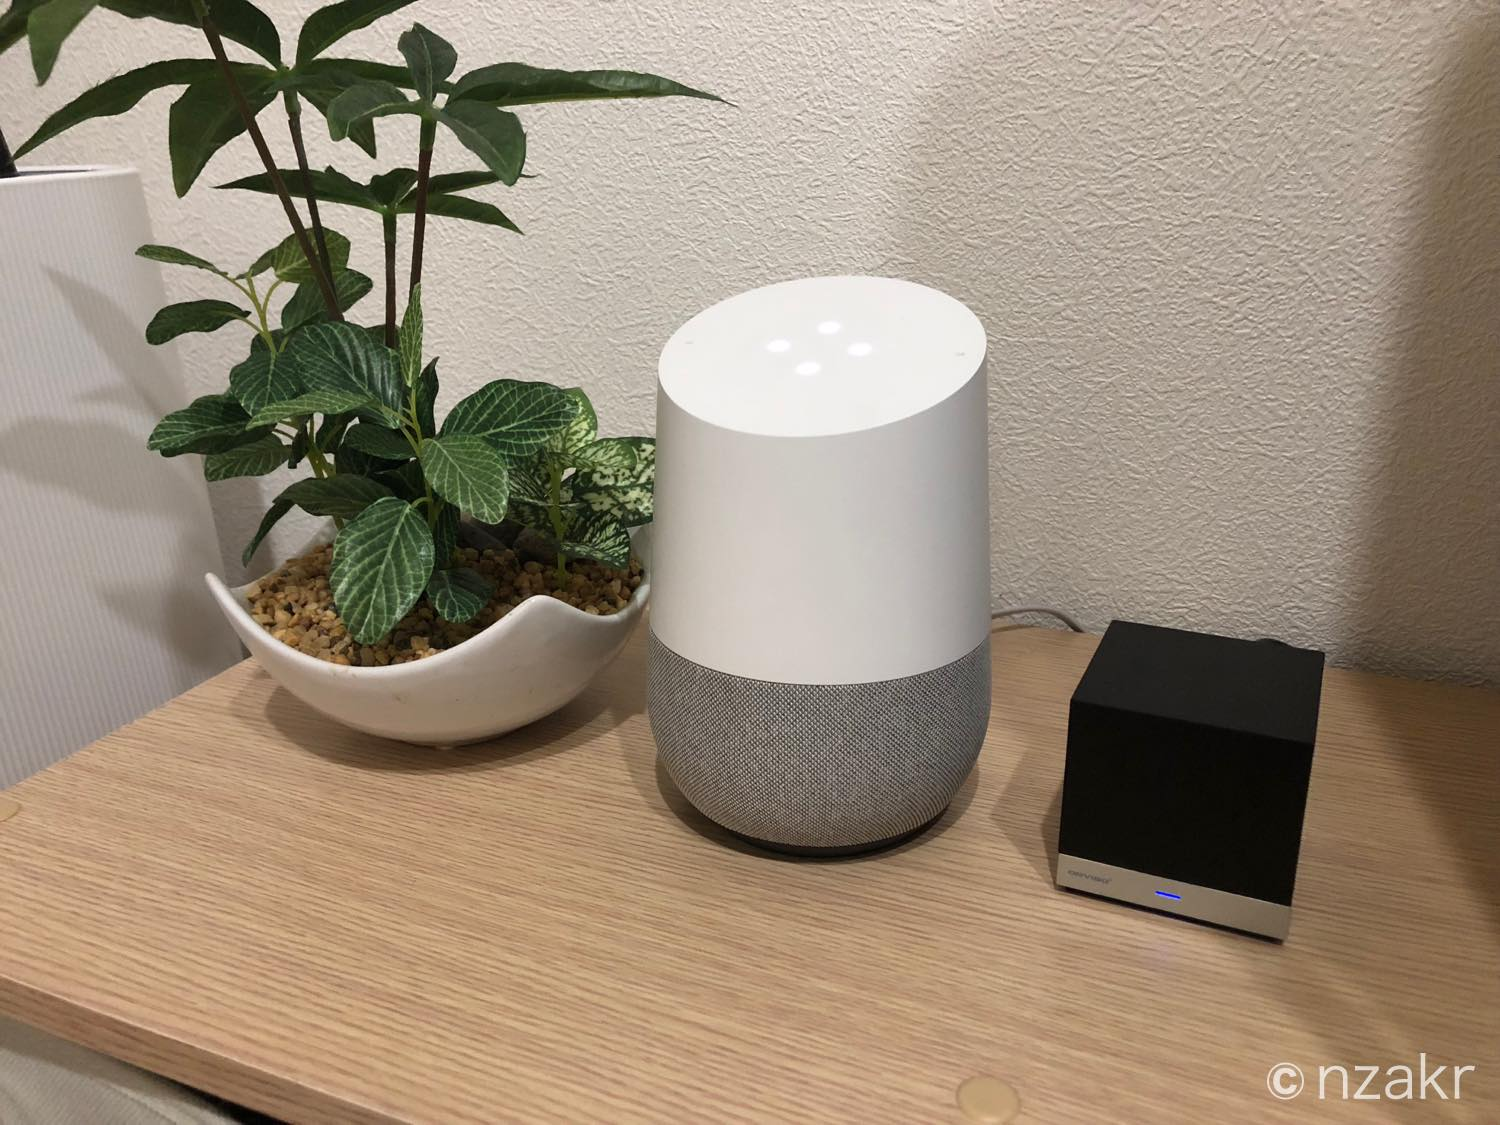 Google HomeとMagic Cube